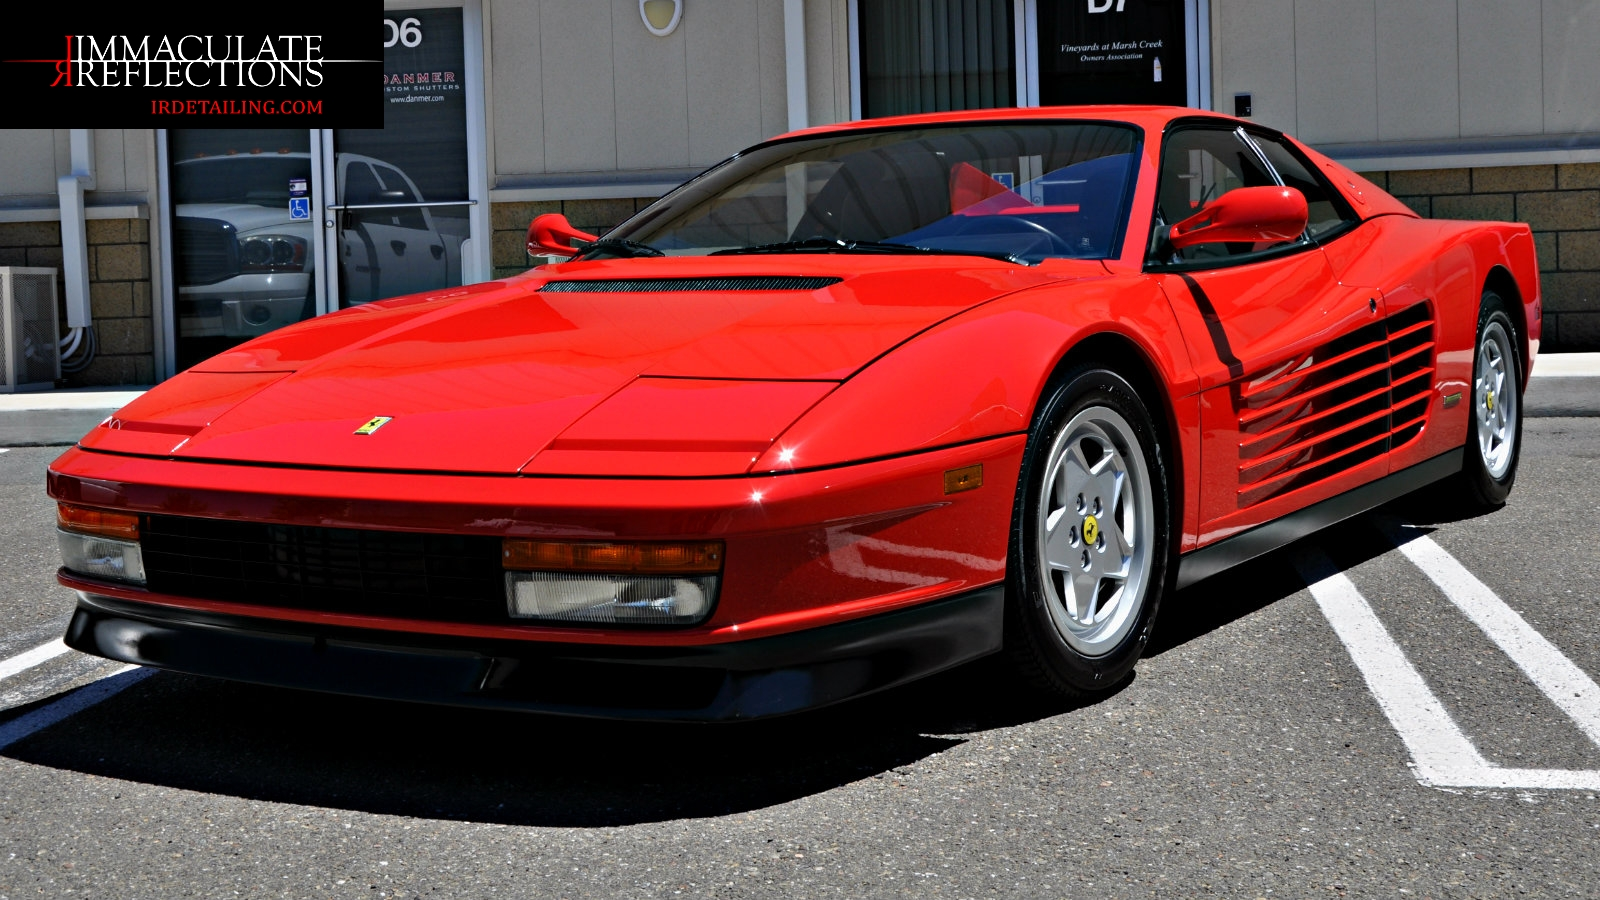 This Ferrari Testarossa has a superior shine from Immaculate Reflecions in Brentwood, Ca.